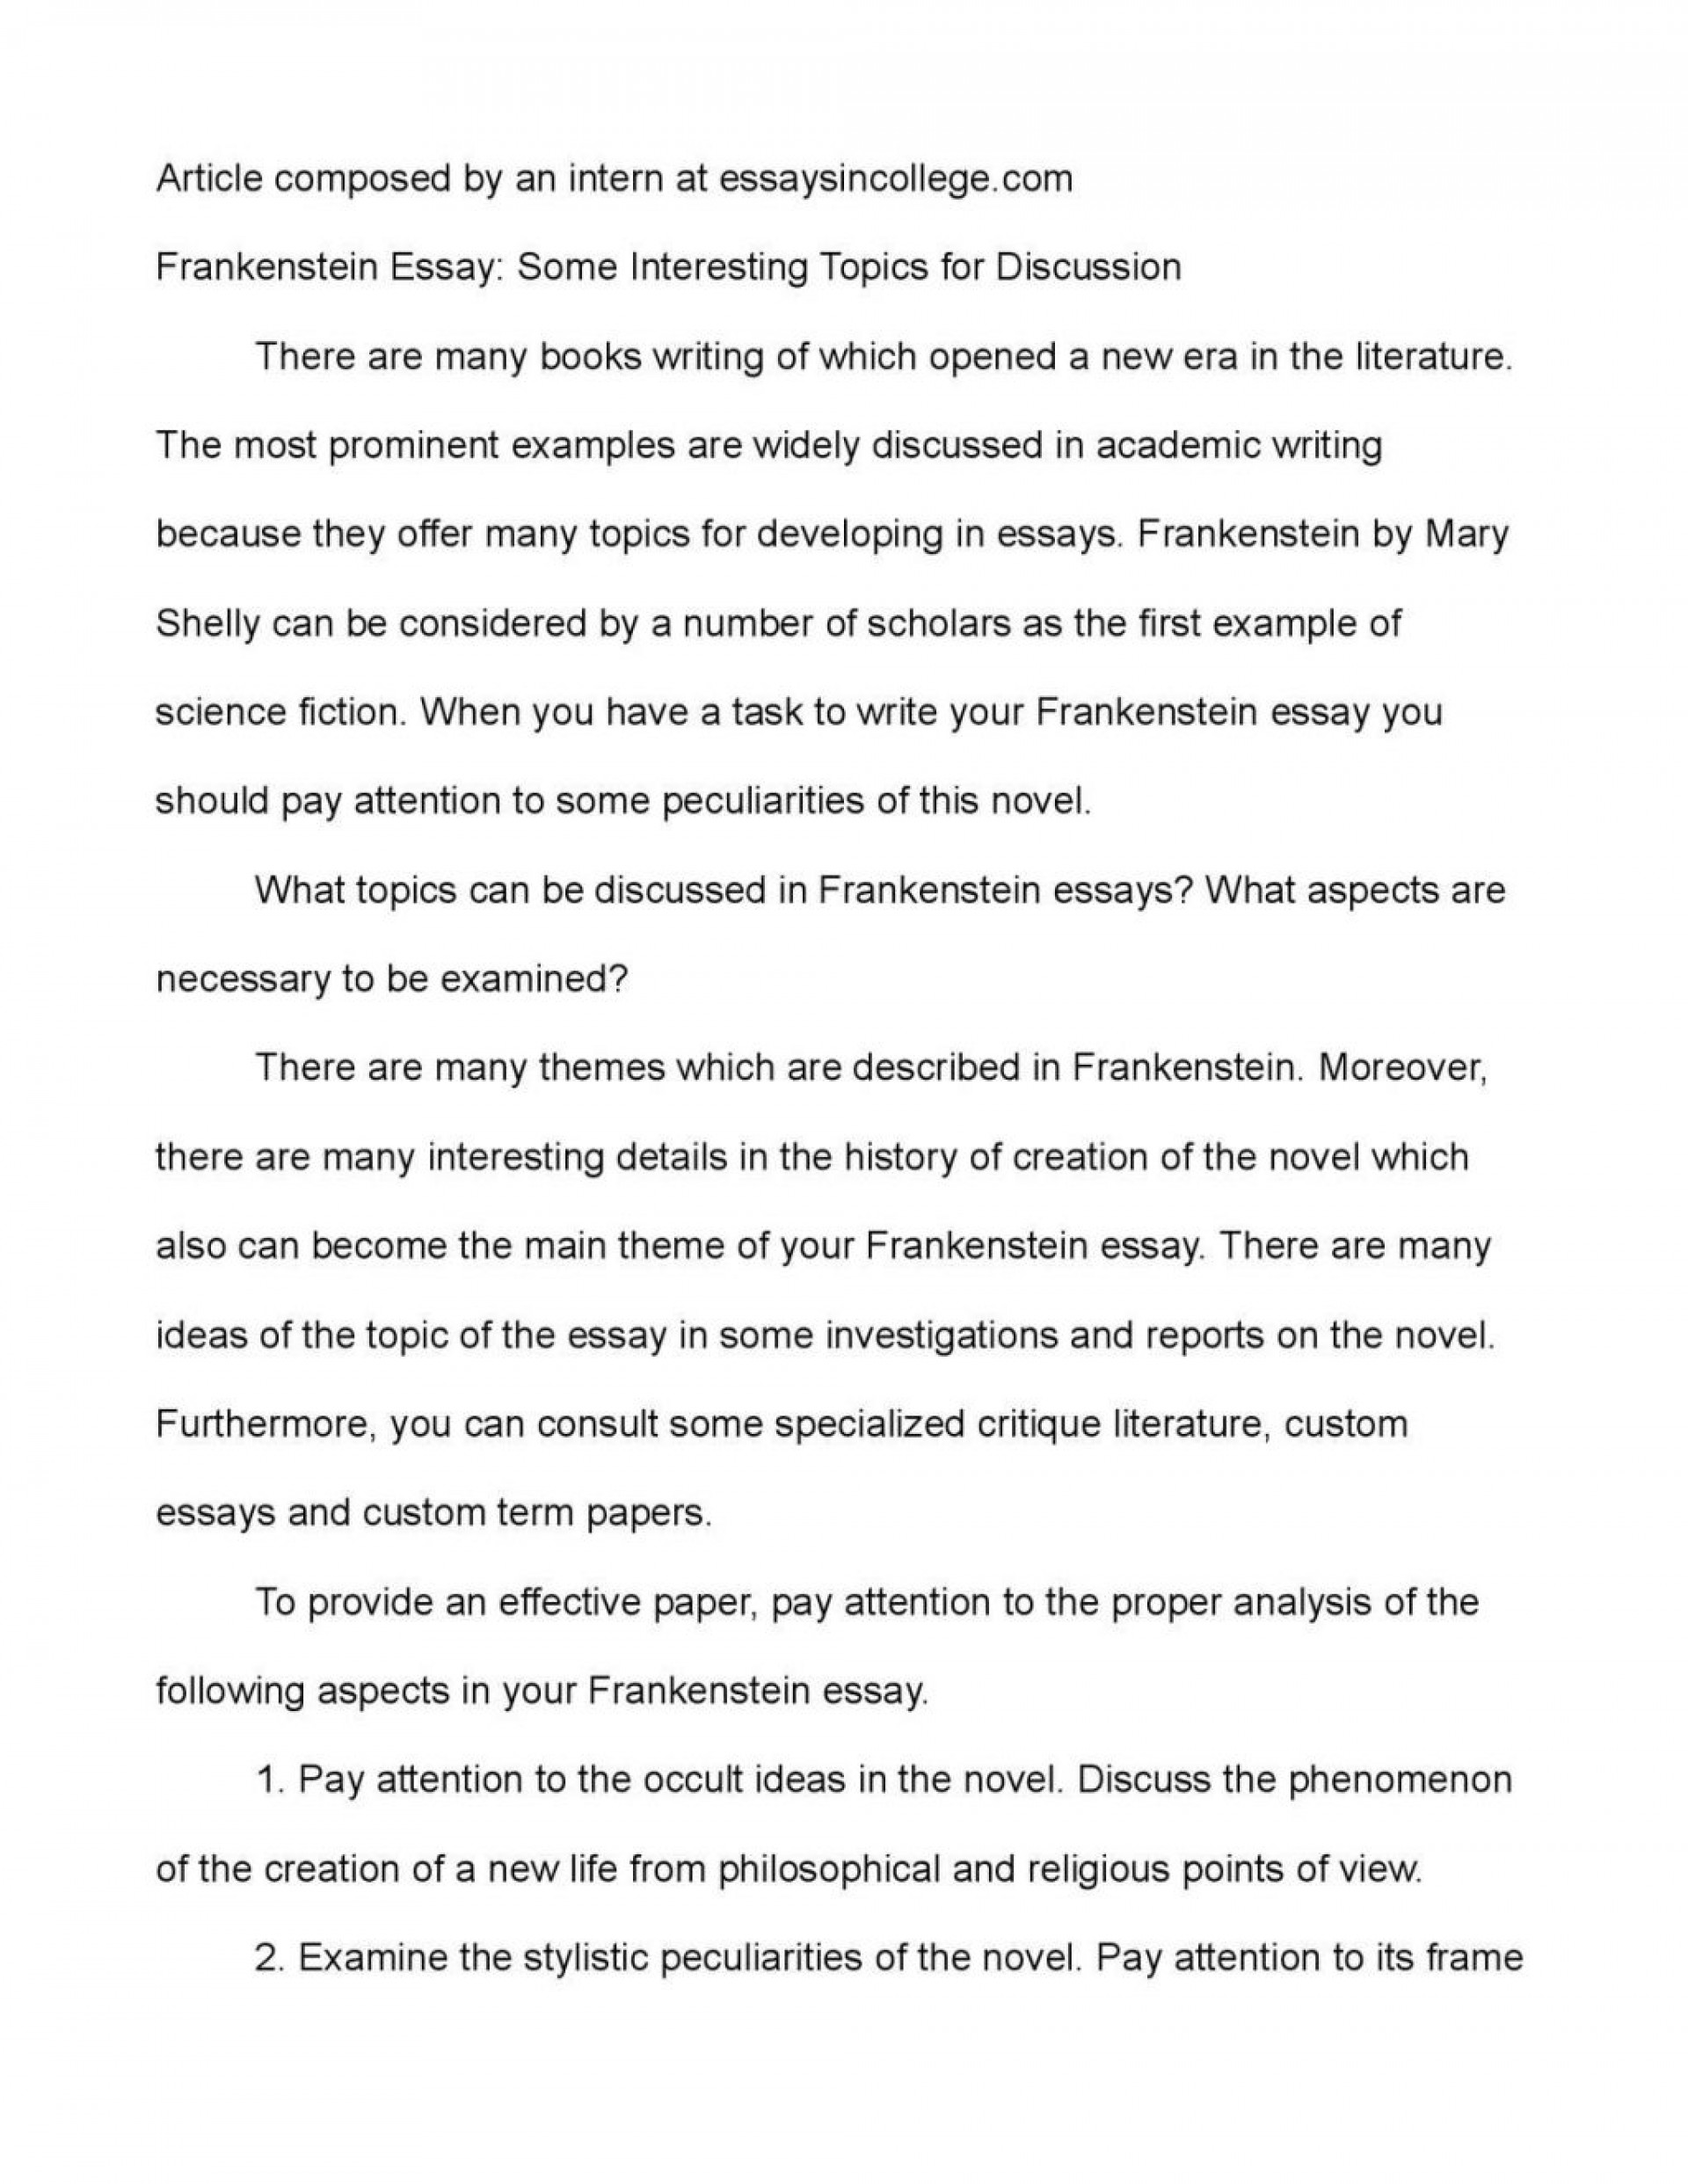 013 Why Should Minimum Wageed Essay Collection Of Solutions Fabulous Template Writing Definitiony Examples Valid Xat Sample Unusual Wage Be Raised We Raise Not Increase 1920